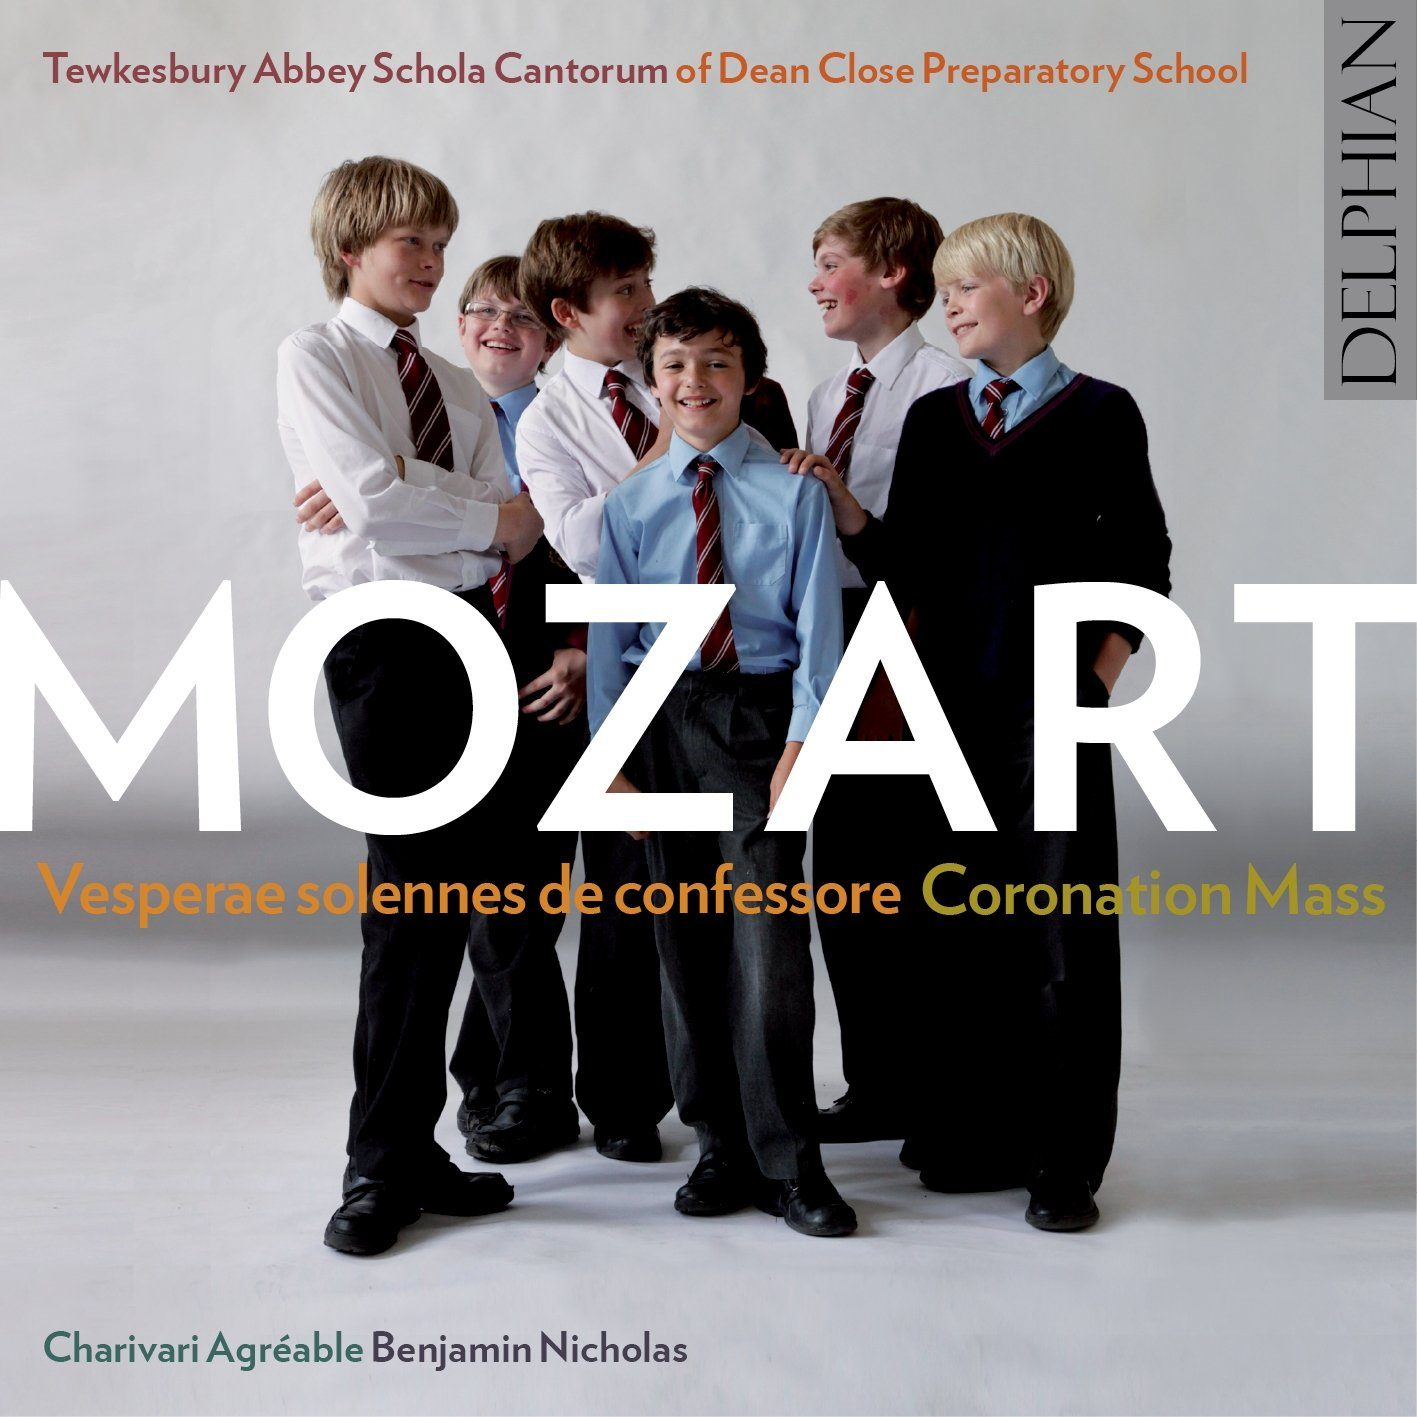 Mozart: 'Coronation' Mass, Vespers, Ave verum corpus CD Delphian Records